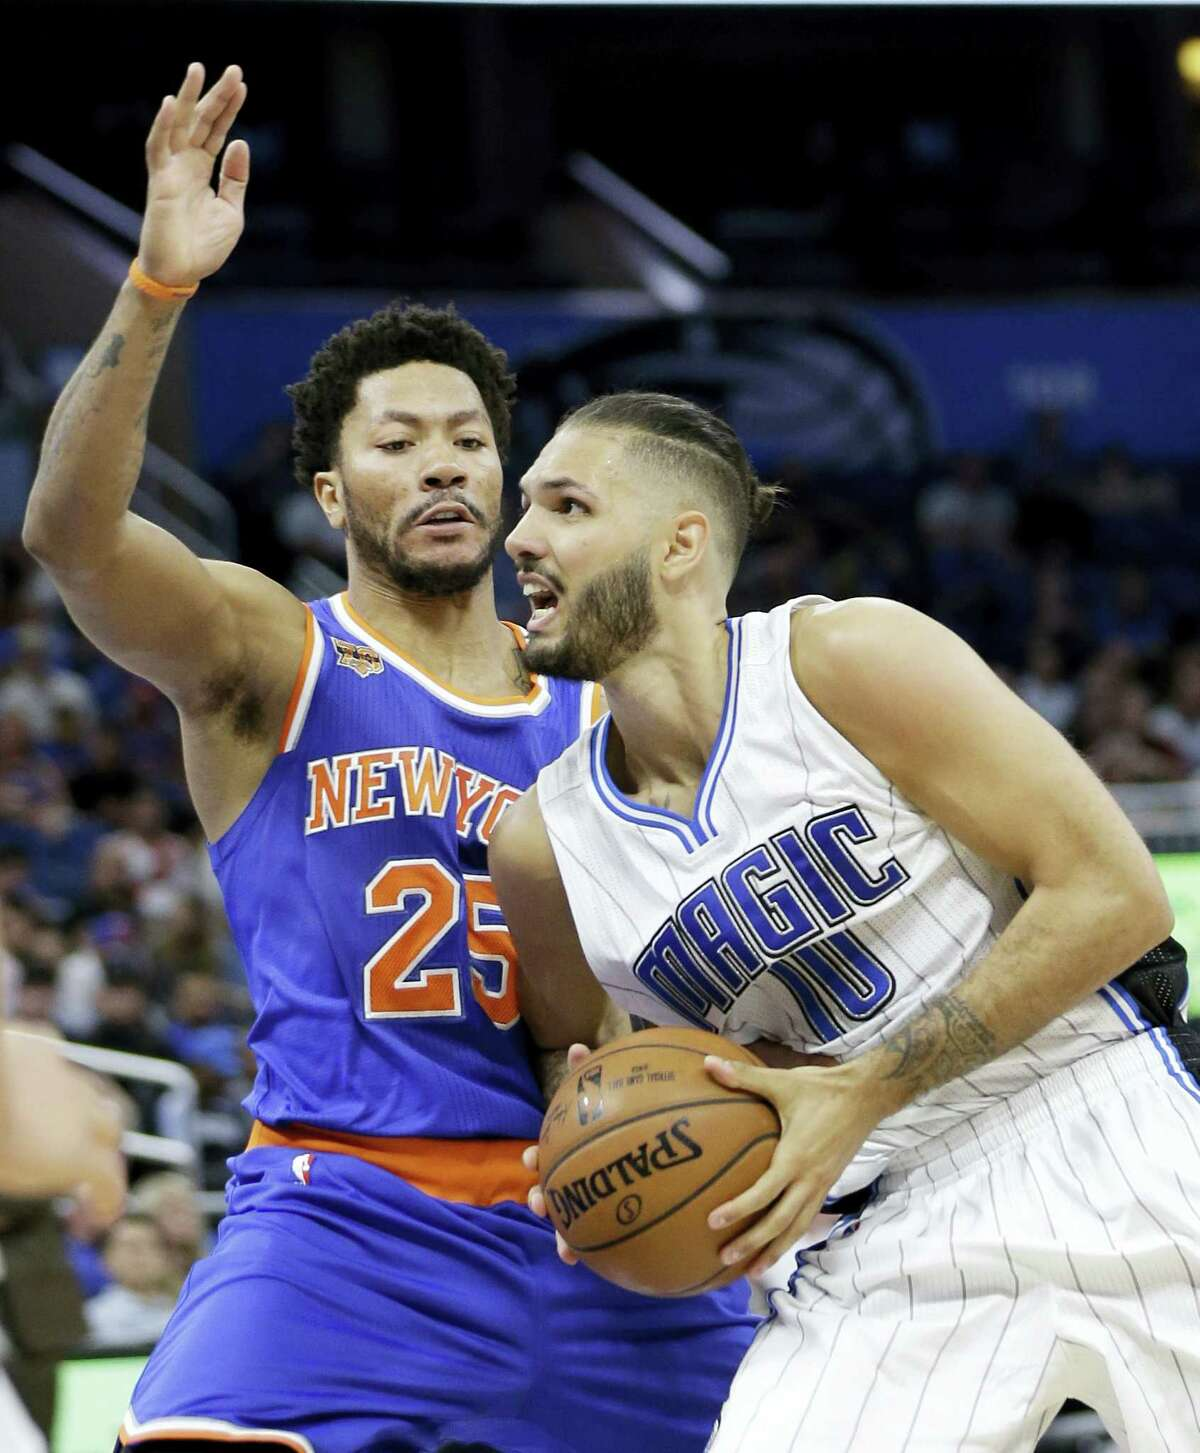 Orlando Magic's Evan Fournier (10) goes to the basket against New York Knicks' Derrick Rose (25) during the second half of an NBA basketball game on March 1, 2017 in Orlando, Fla. New York won 101-90.